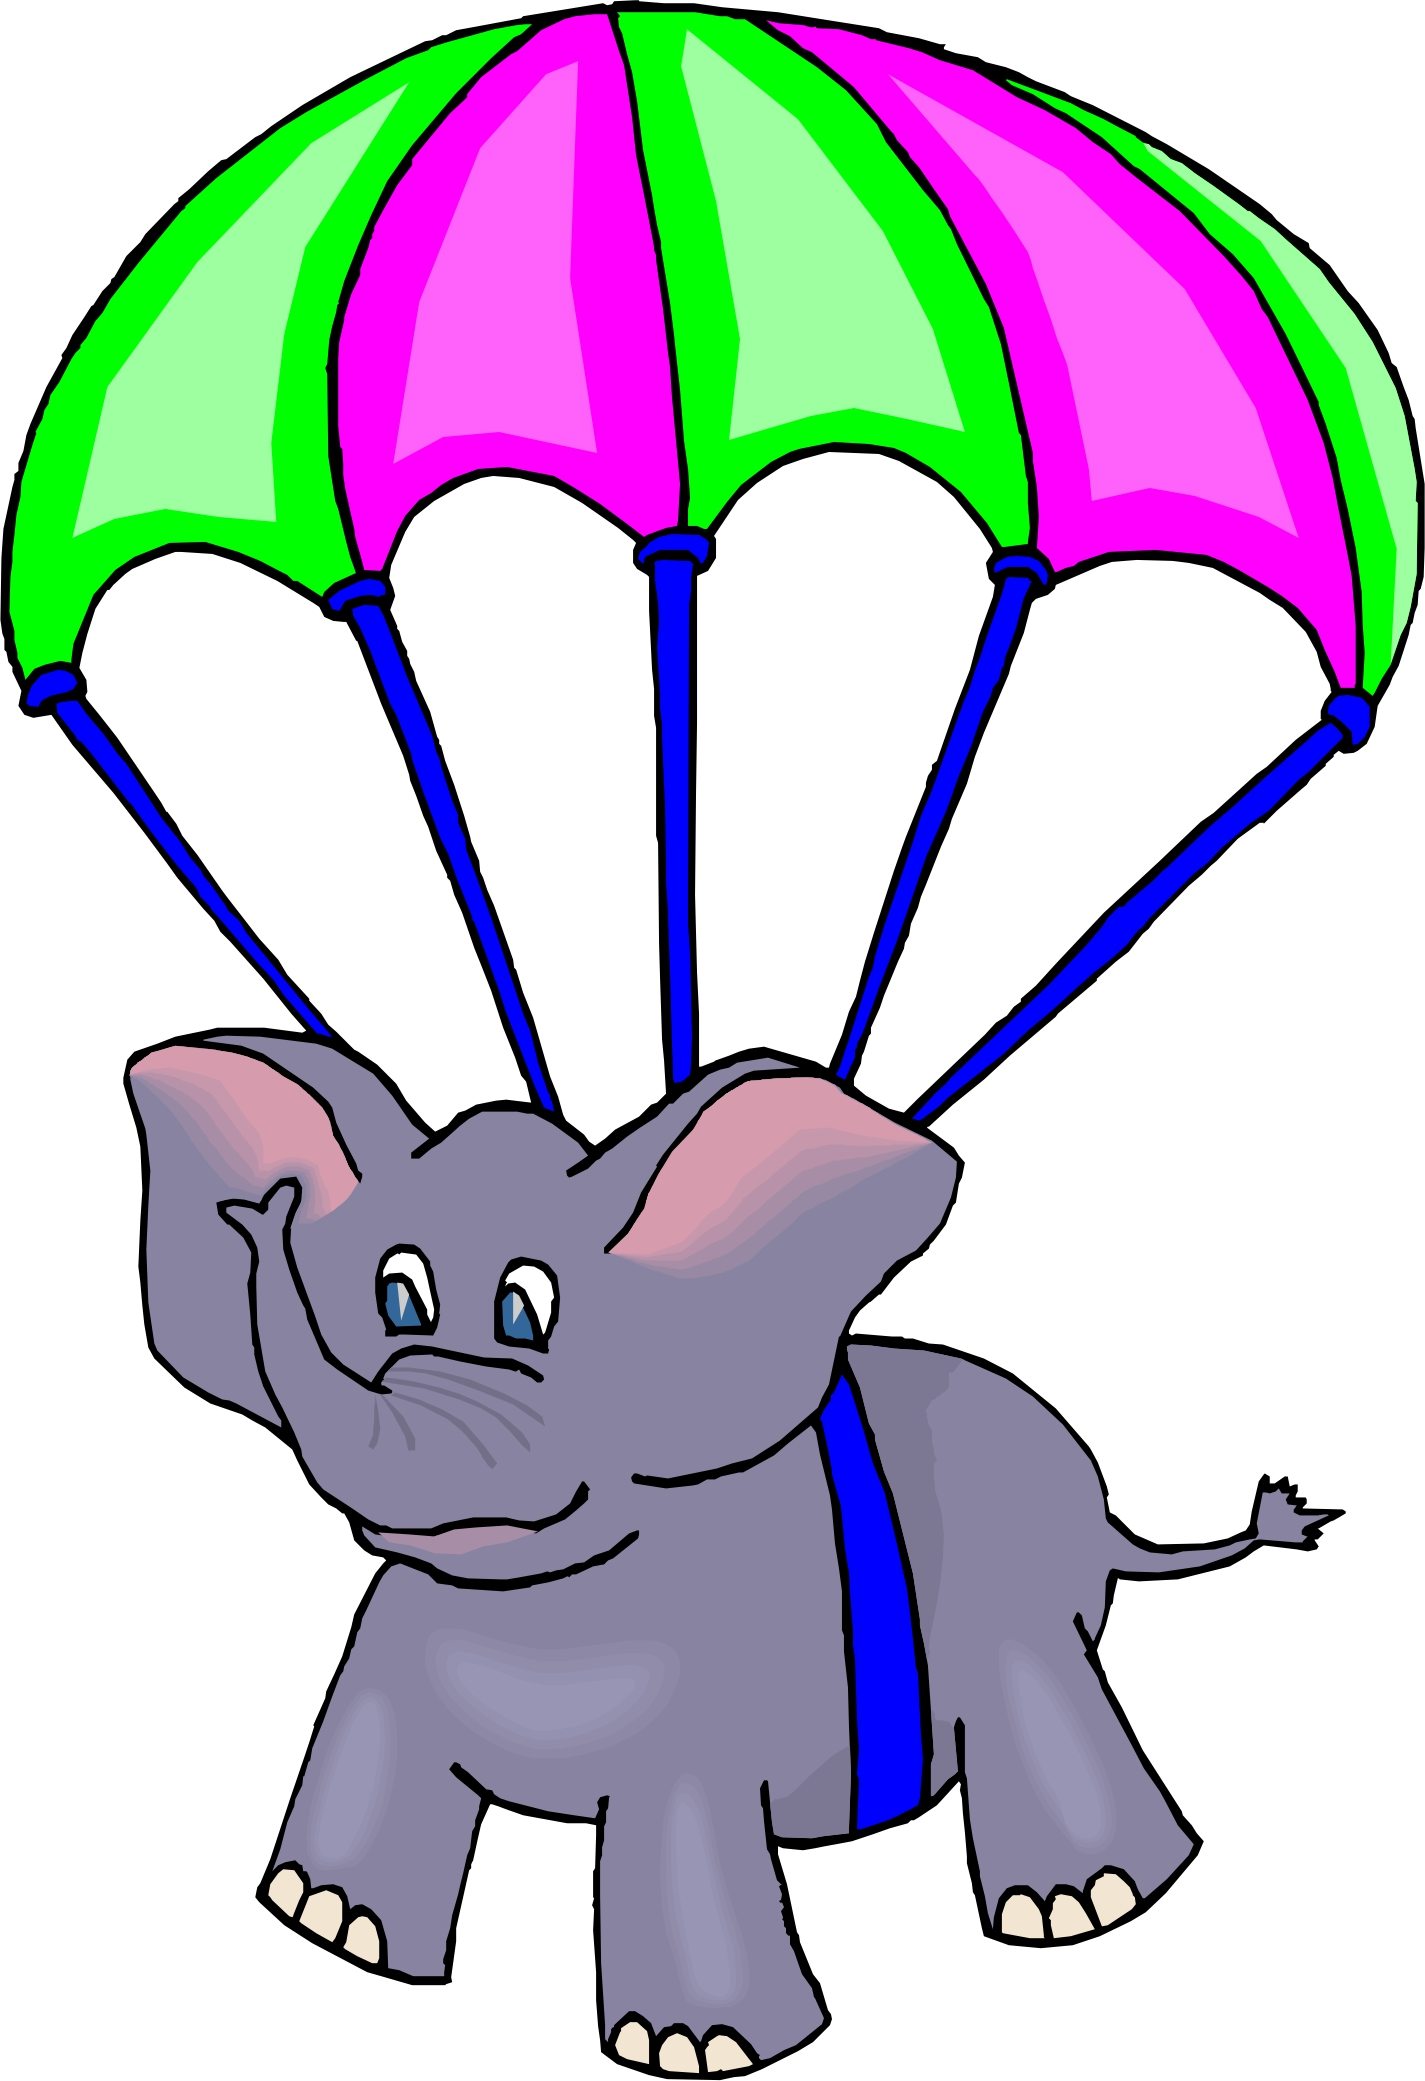 Parachutist clipart cartoon Parachute Clipart and Parachute Drop